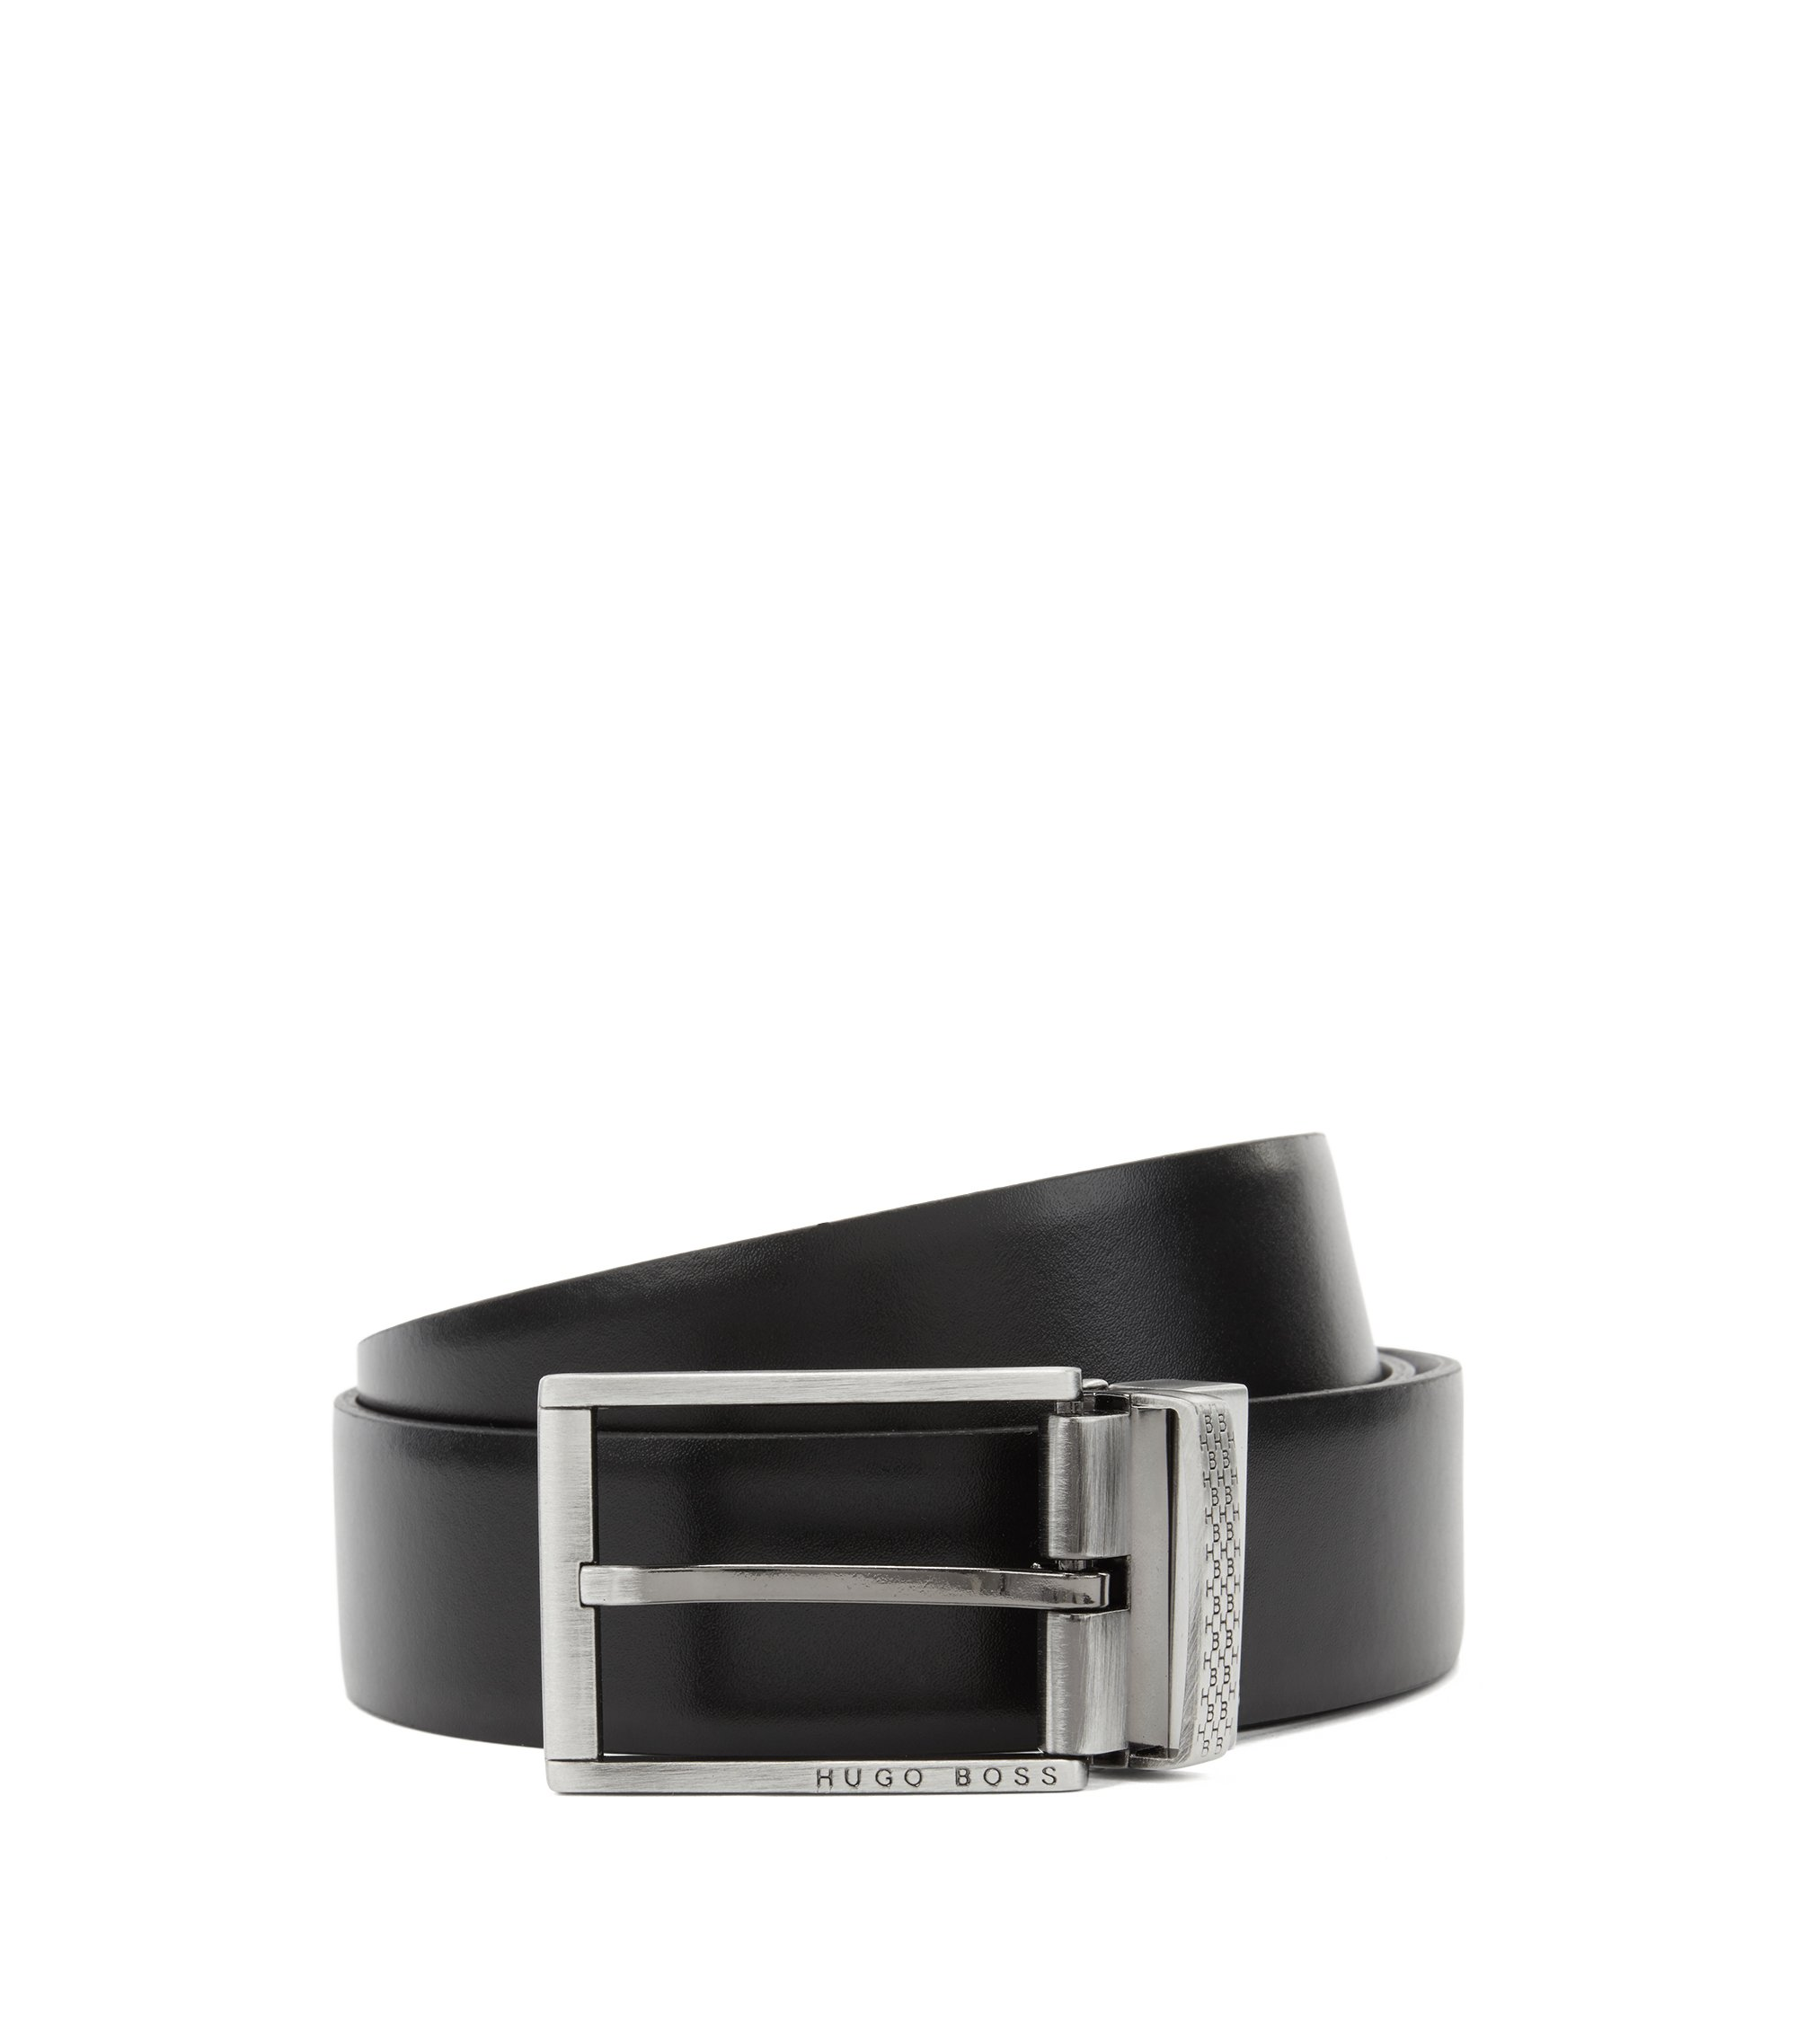 Reversible belt in leather with embossed double buckle option, Black